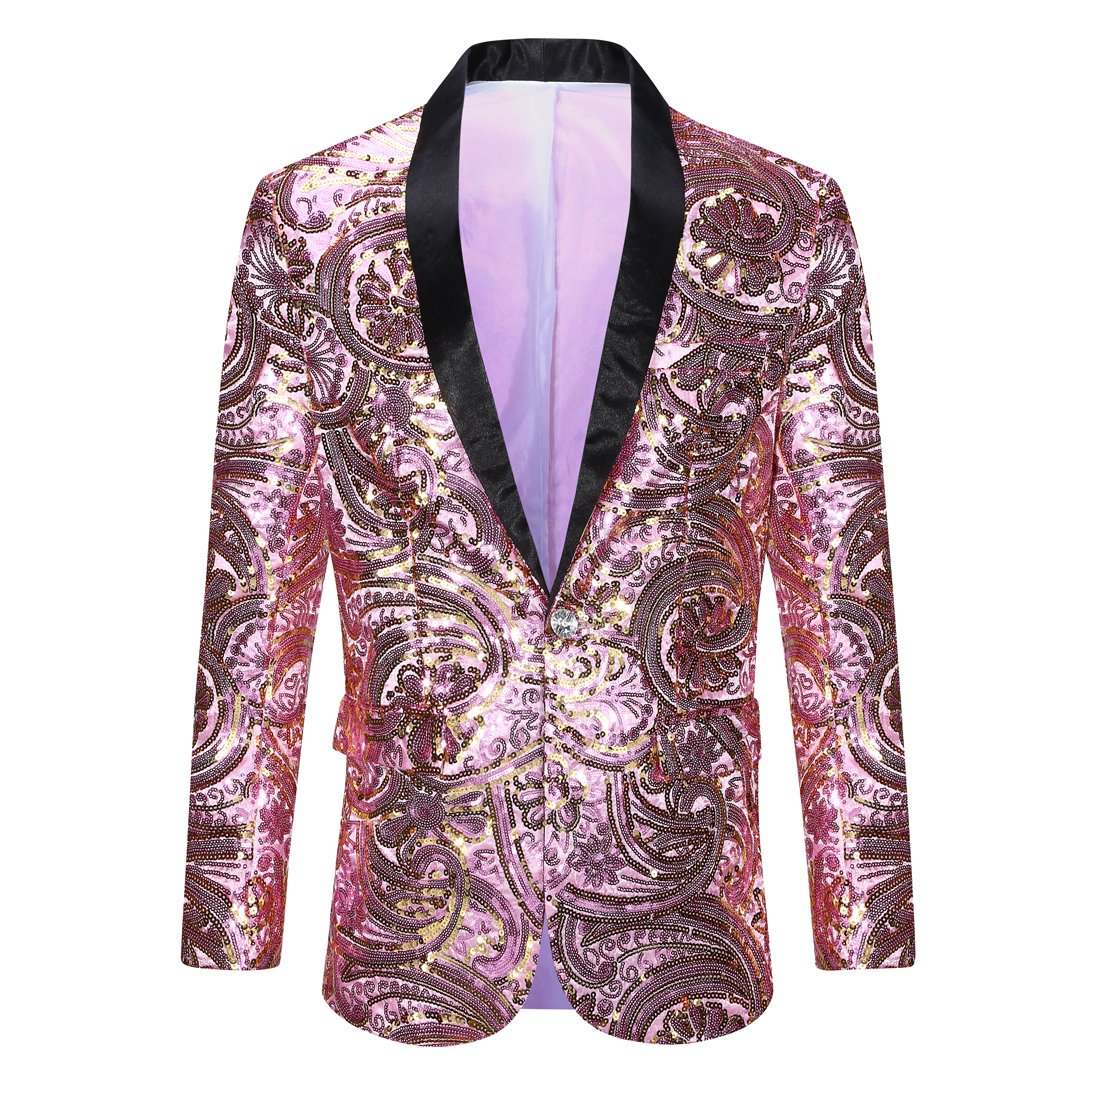 PYJTRL Men's Pink Gold Flower Pattern Wedding Groom Singer Sequins Suit Jacket (Pink, Tag 4XL (US XXL) Chest 48'')